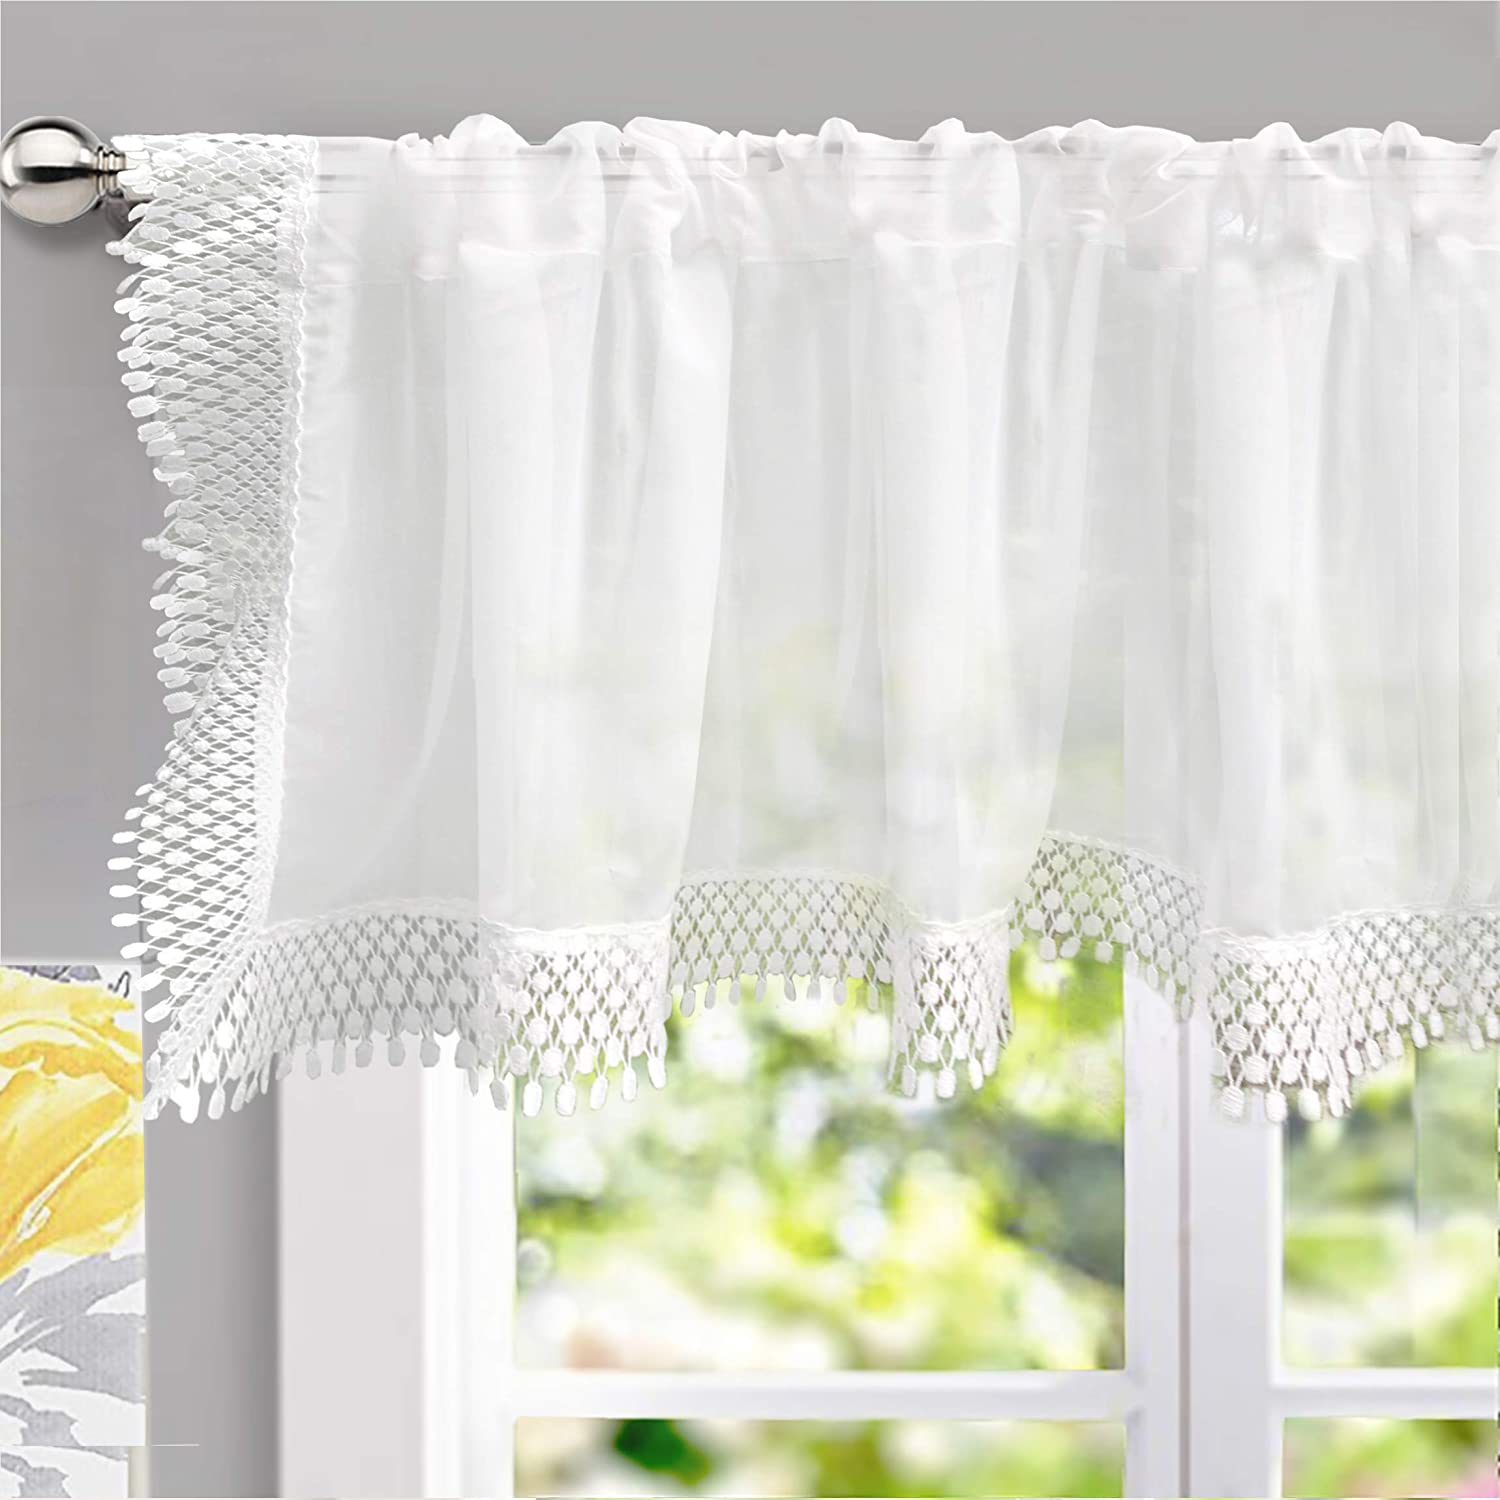 """DriftAway Ava Voile Sheer Curtain Valance with Lace/Crochet Trim, Soft White Voile Chiffon Plain Sheer Window Valance Curtain Panel for Small Window/Kitchen, Single, 60""""x18""""(Off White)"""